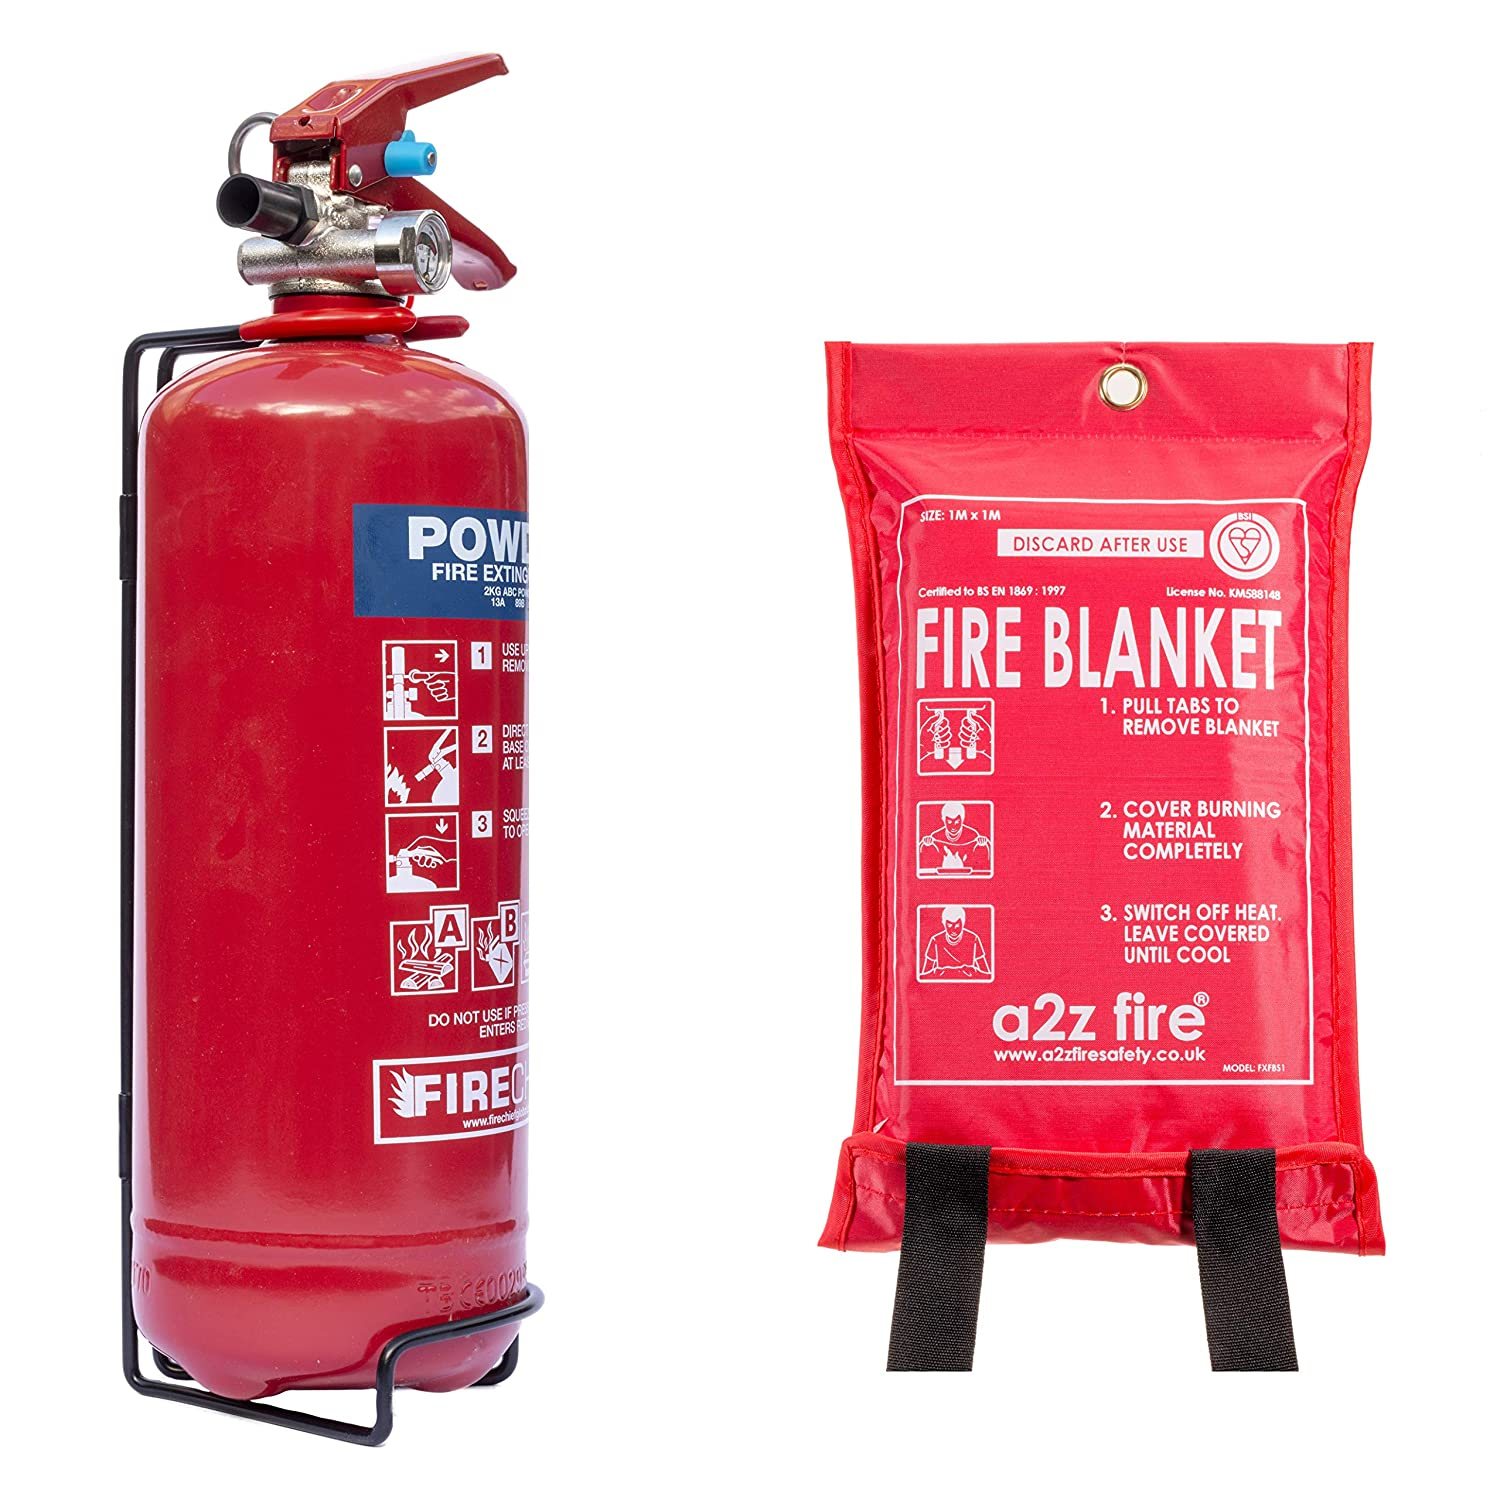 Fire Extinguisher Home Safety Kit with Fire Blanket. British Standard BSi Kitemarked, CE Approved & BS EN3 Rated. Premium 2kg Powder Extinguisher & Blanket Range with Full 5 Year Warranty that is the Perfect Fire Safety Kit for Home & Kitchen as well as Ca